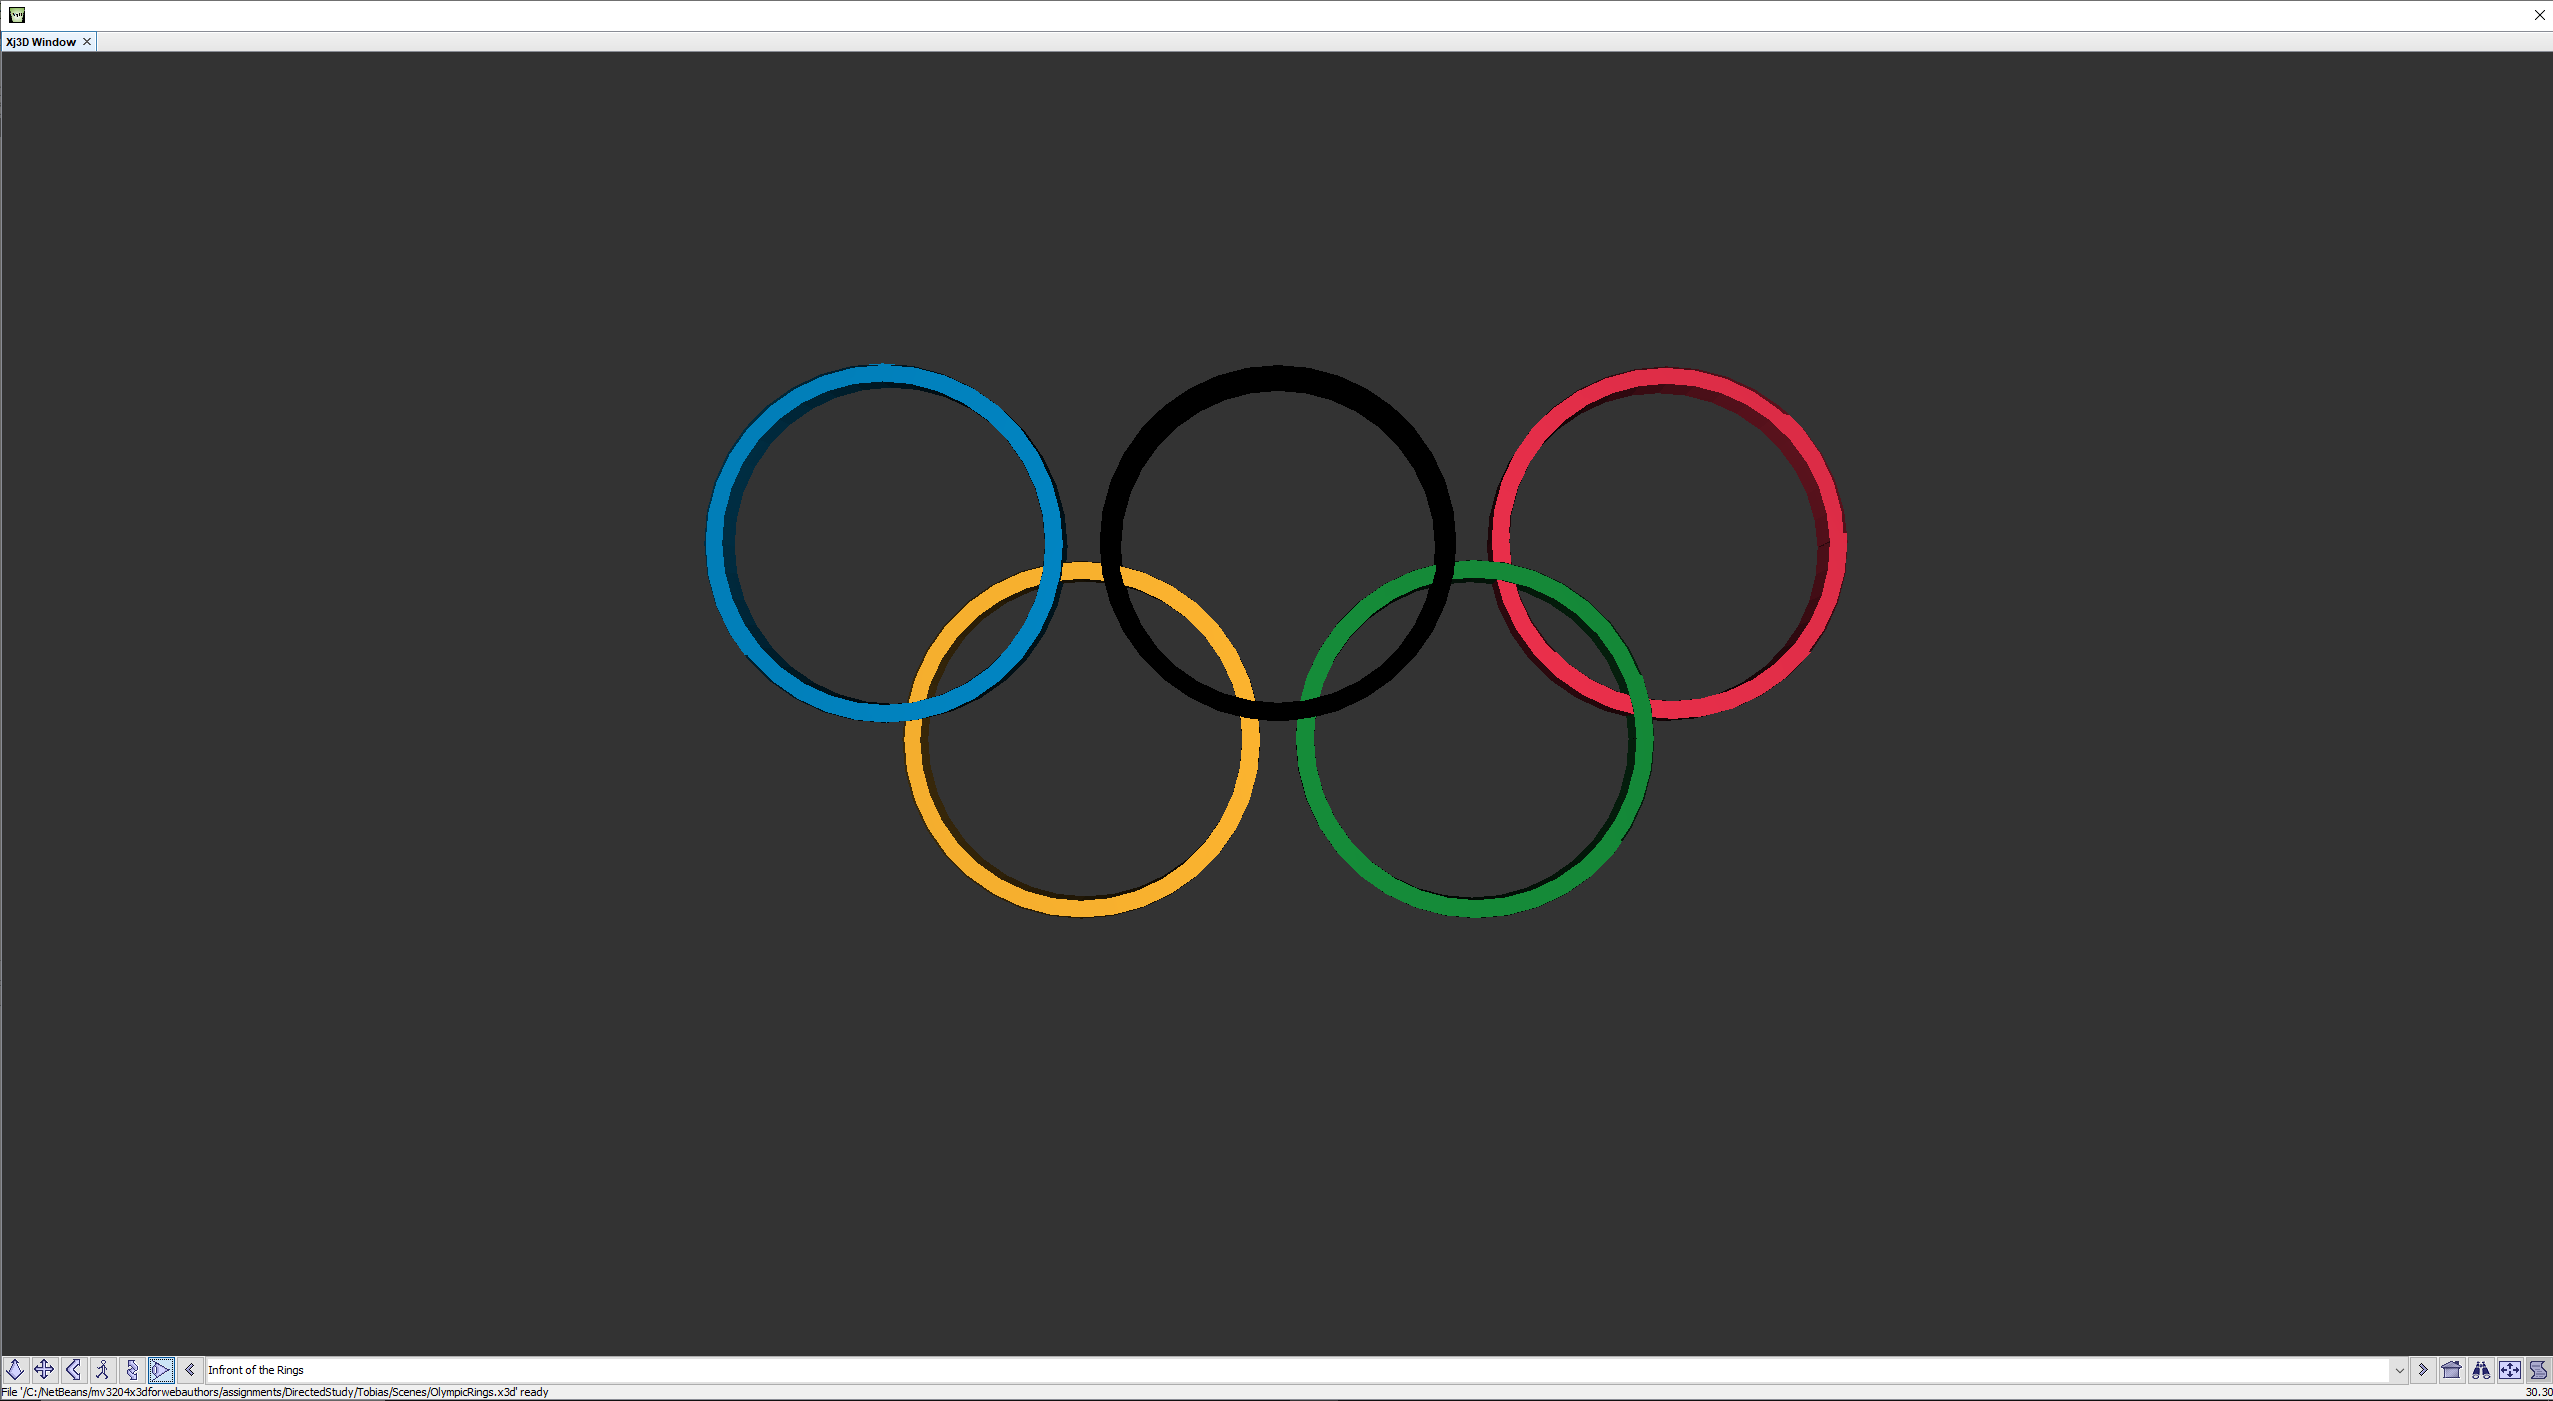 BrennenstuhlTobias/Screenshots/Player/Olympic Rings/OlympicRings.XJ3D Browser.png